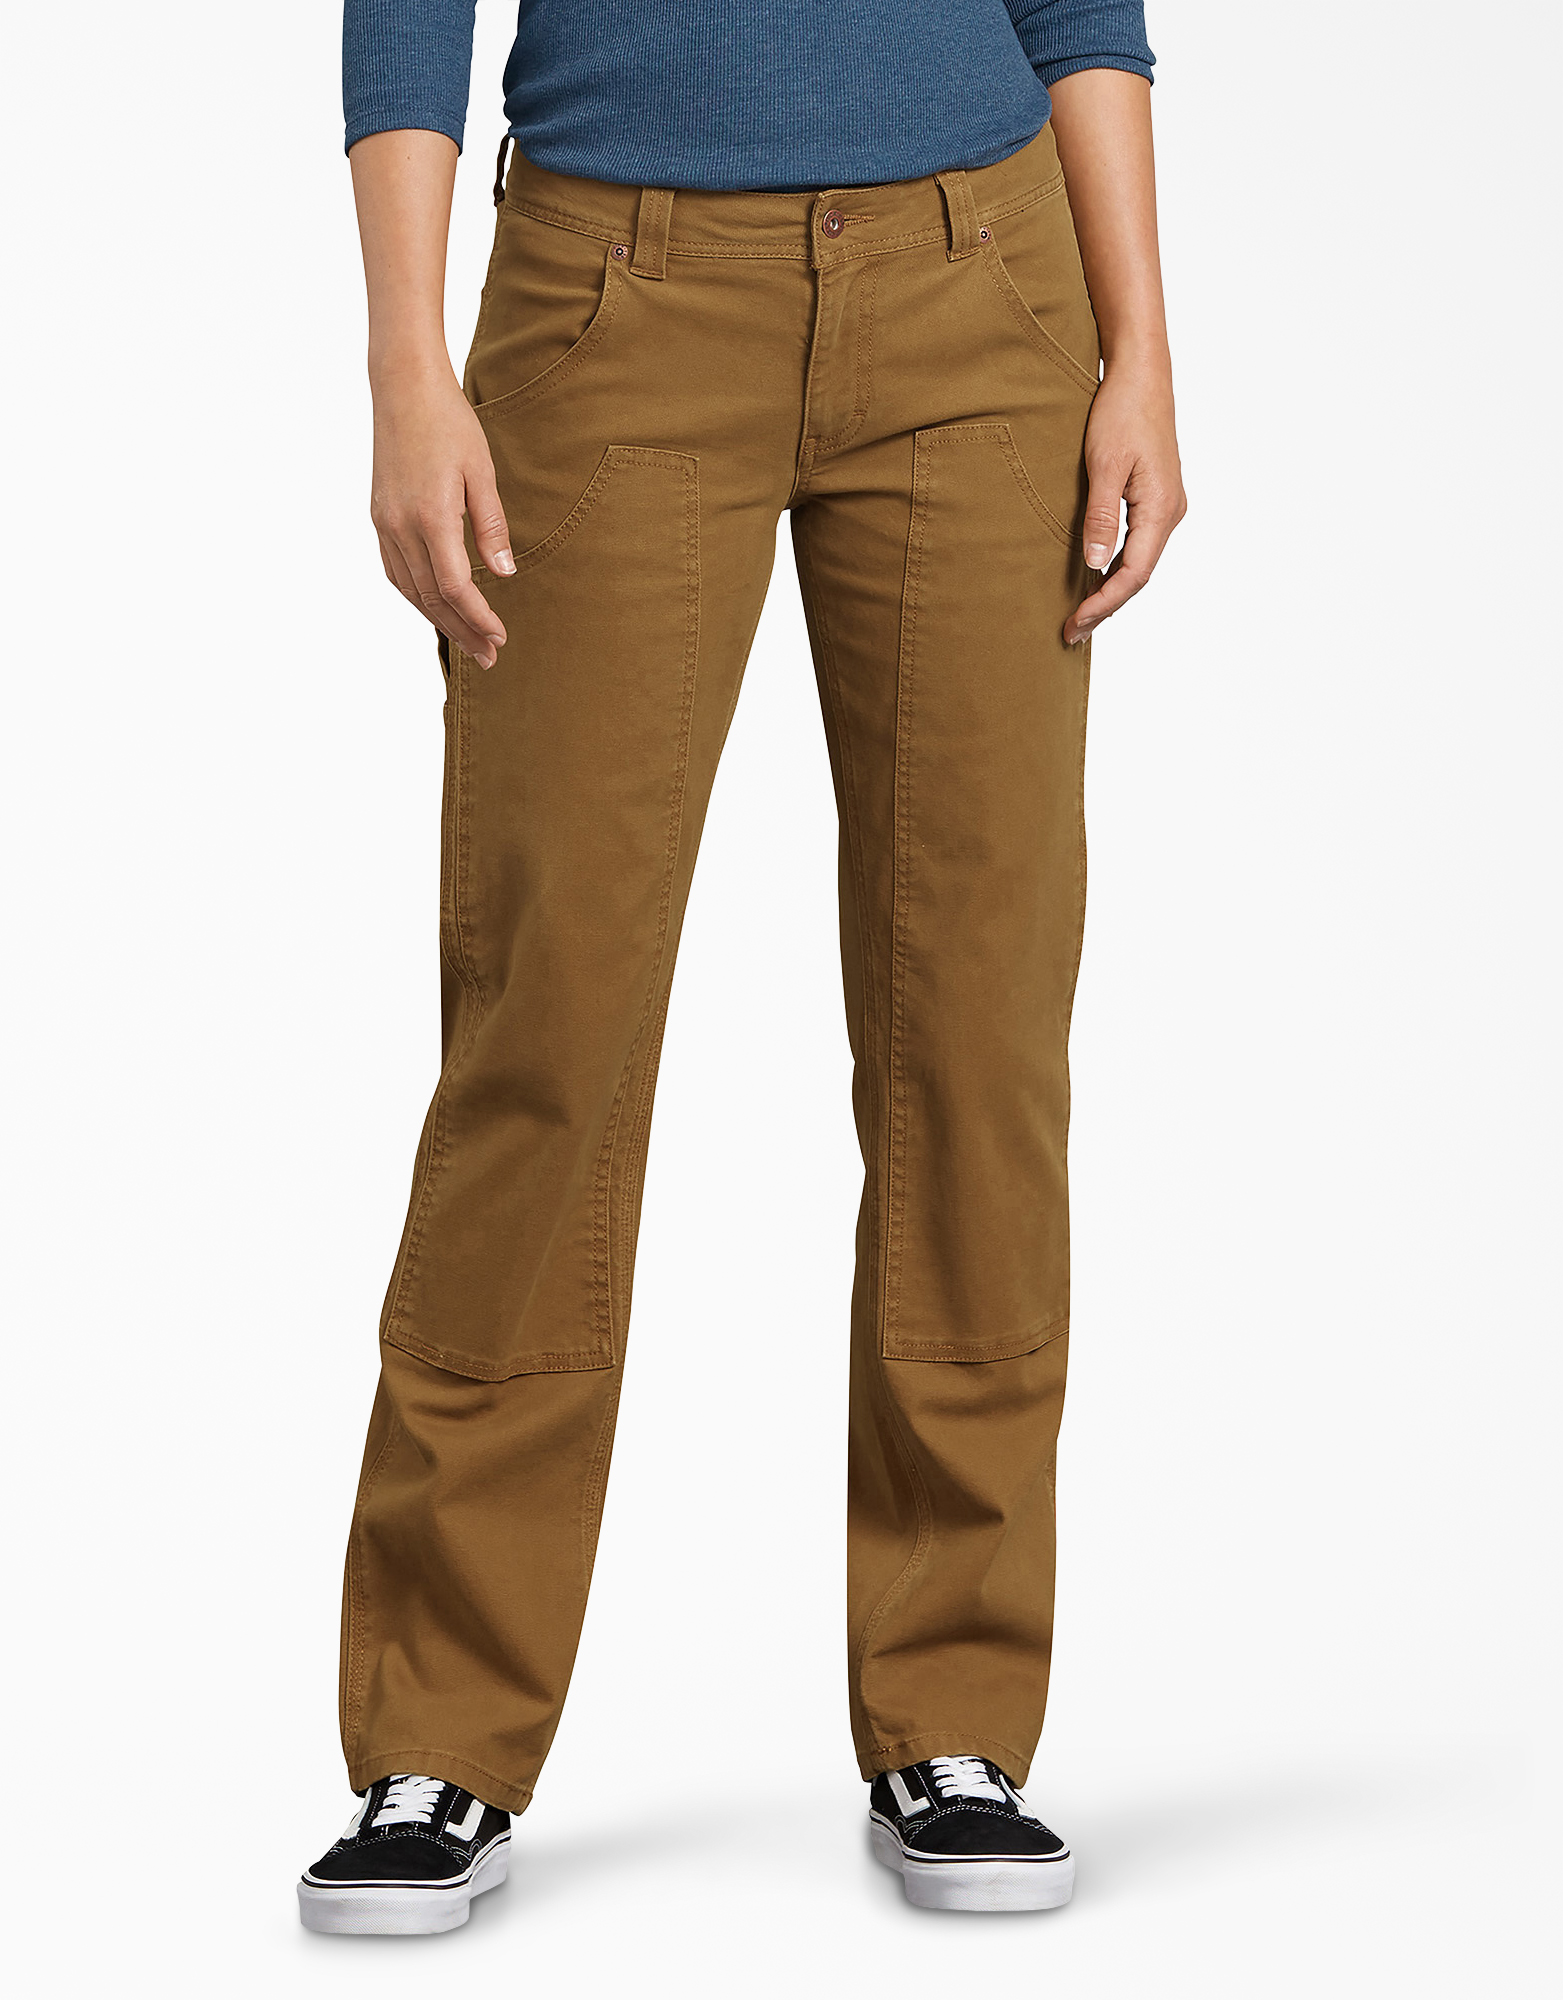 Women's Stretch Double-Front Duck Carpenter Pants - Brown Duck (RBD)